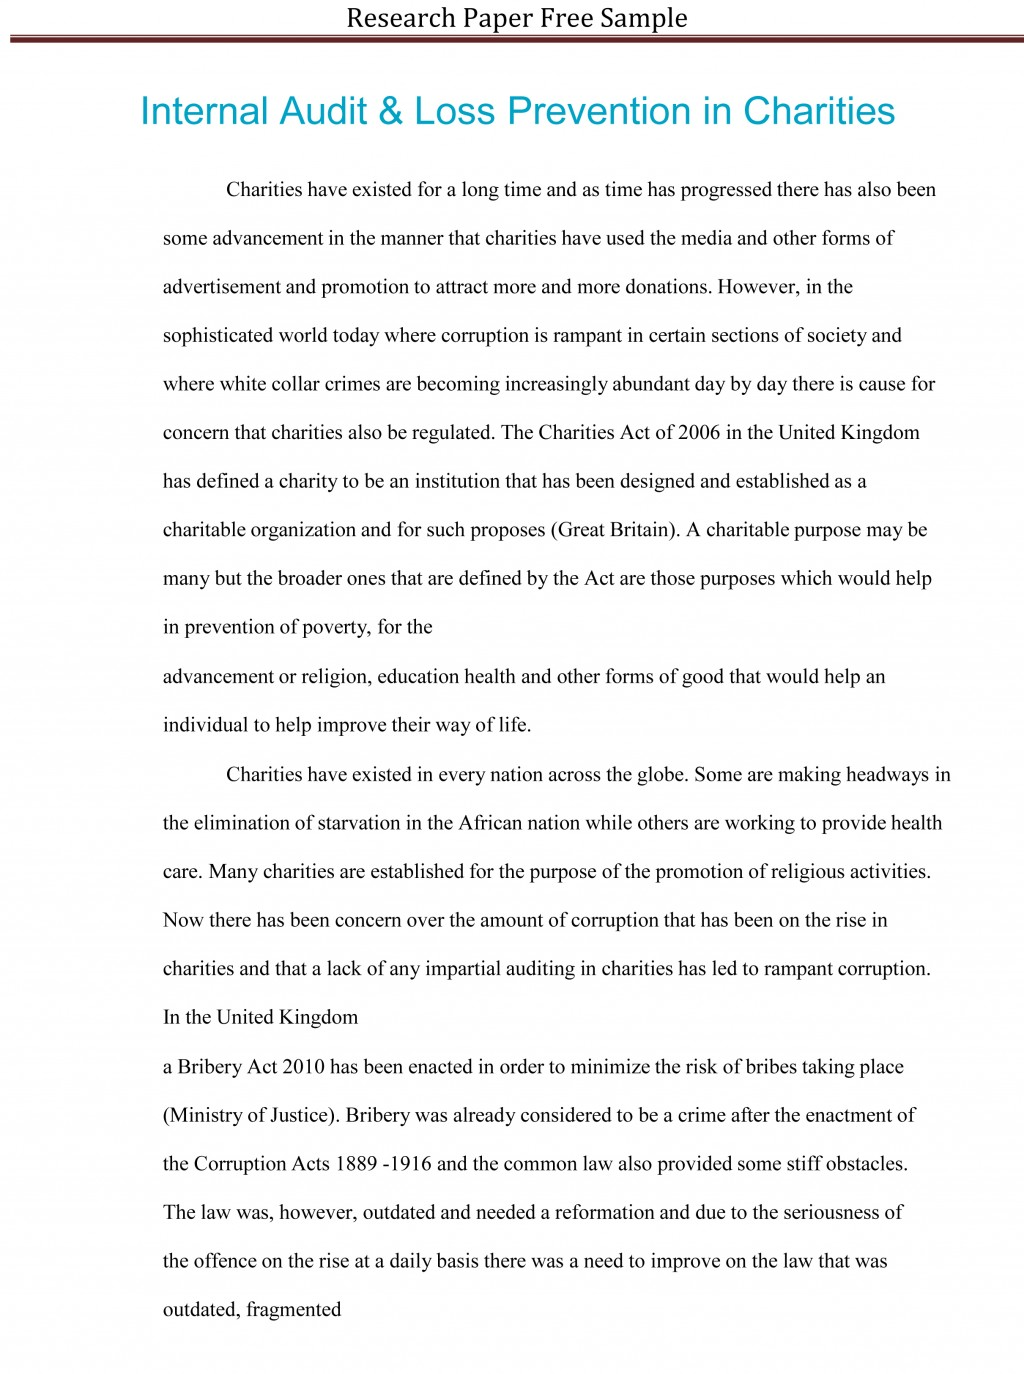 021 Research Paper Sample Essay Example High School Experience Dreaded Free Large